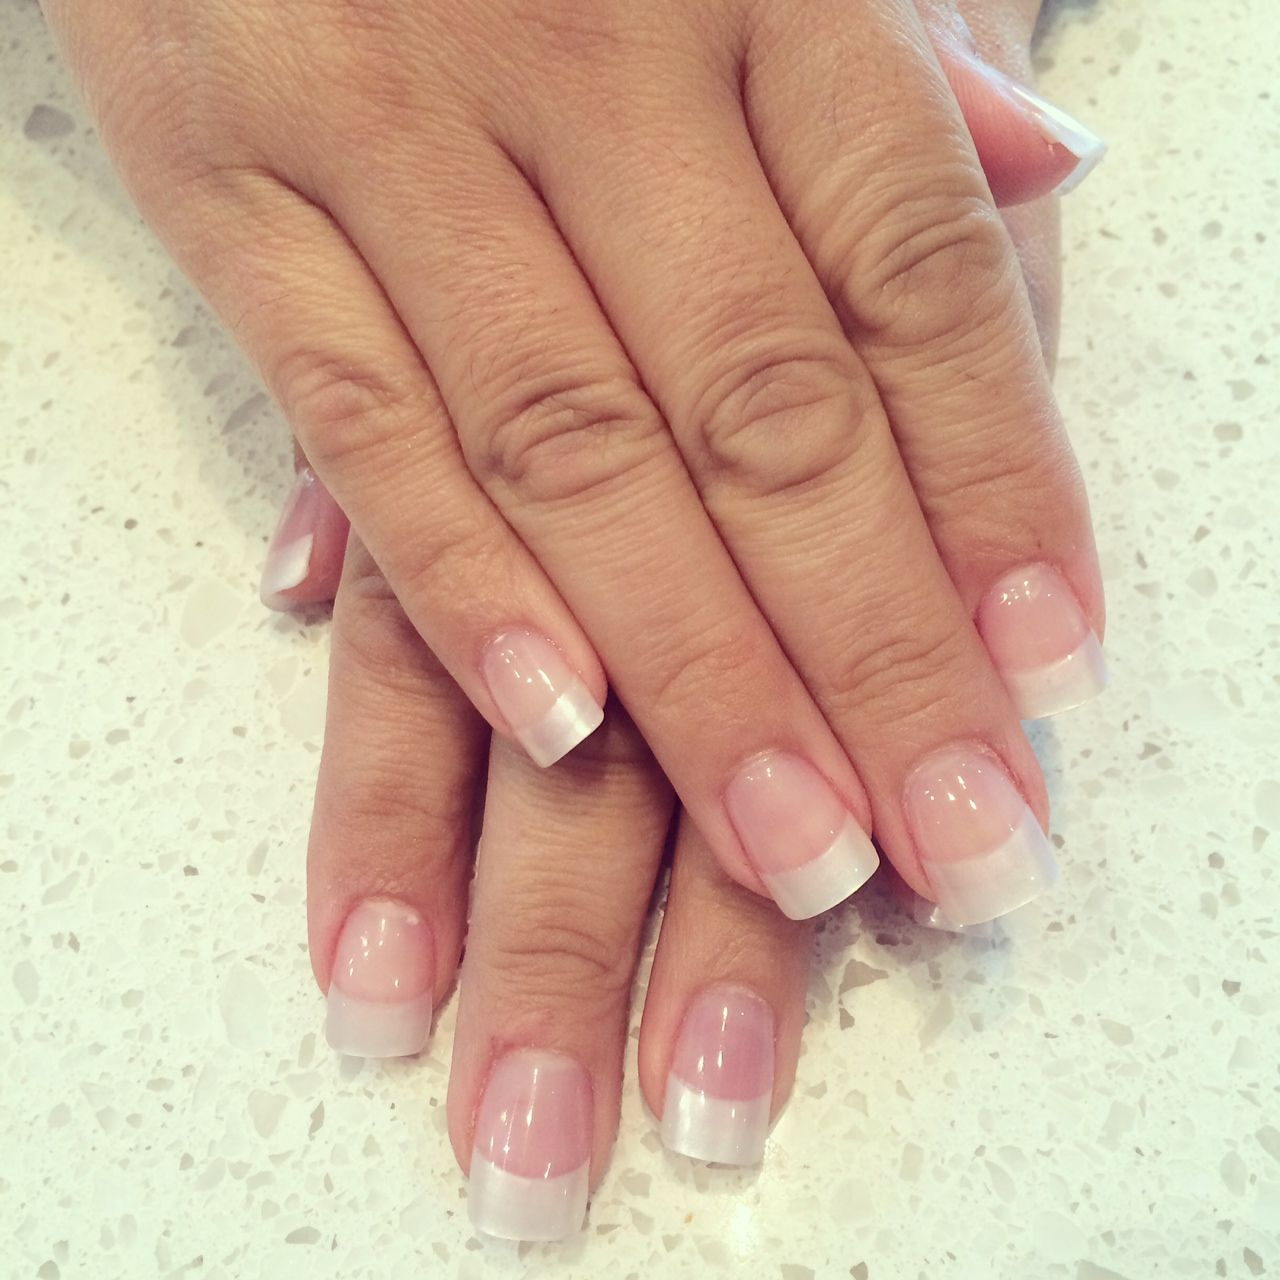 Classic Pearl Tip Acrylic Nails Www Vitalitystudiosa Com Pearl Nails French Tip Acrylic Nails Acrylic Nail Tips